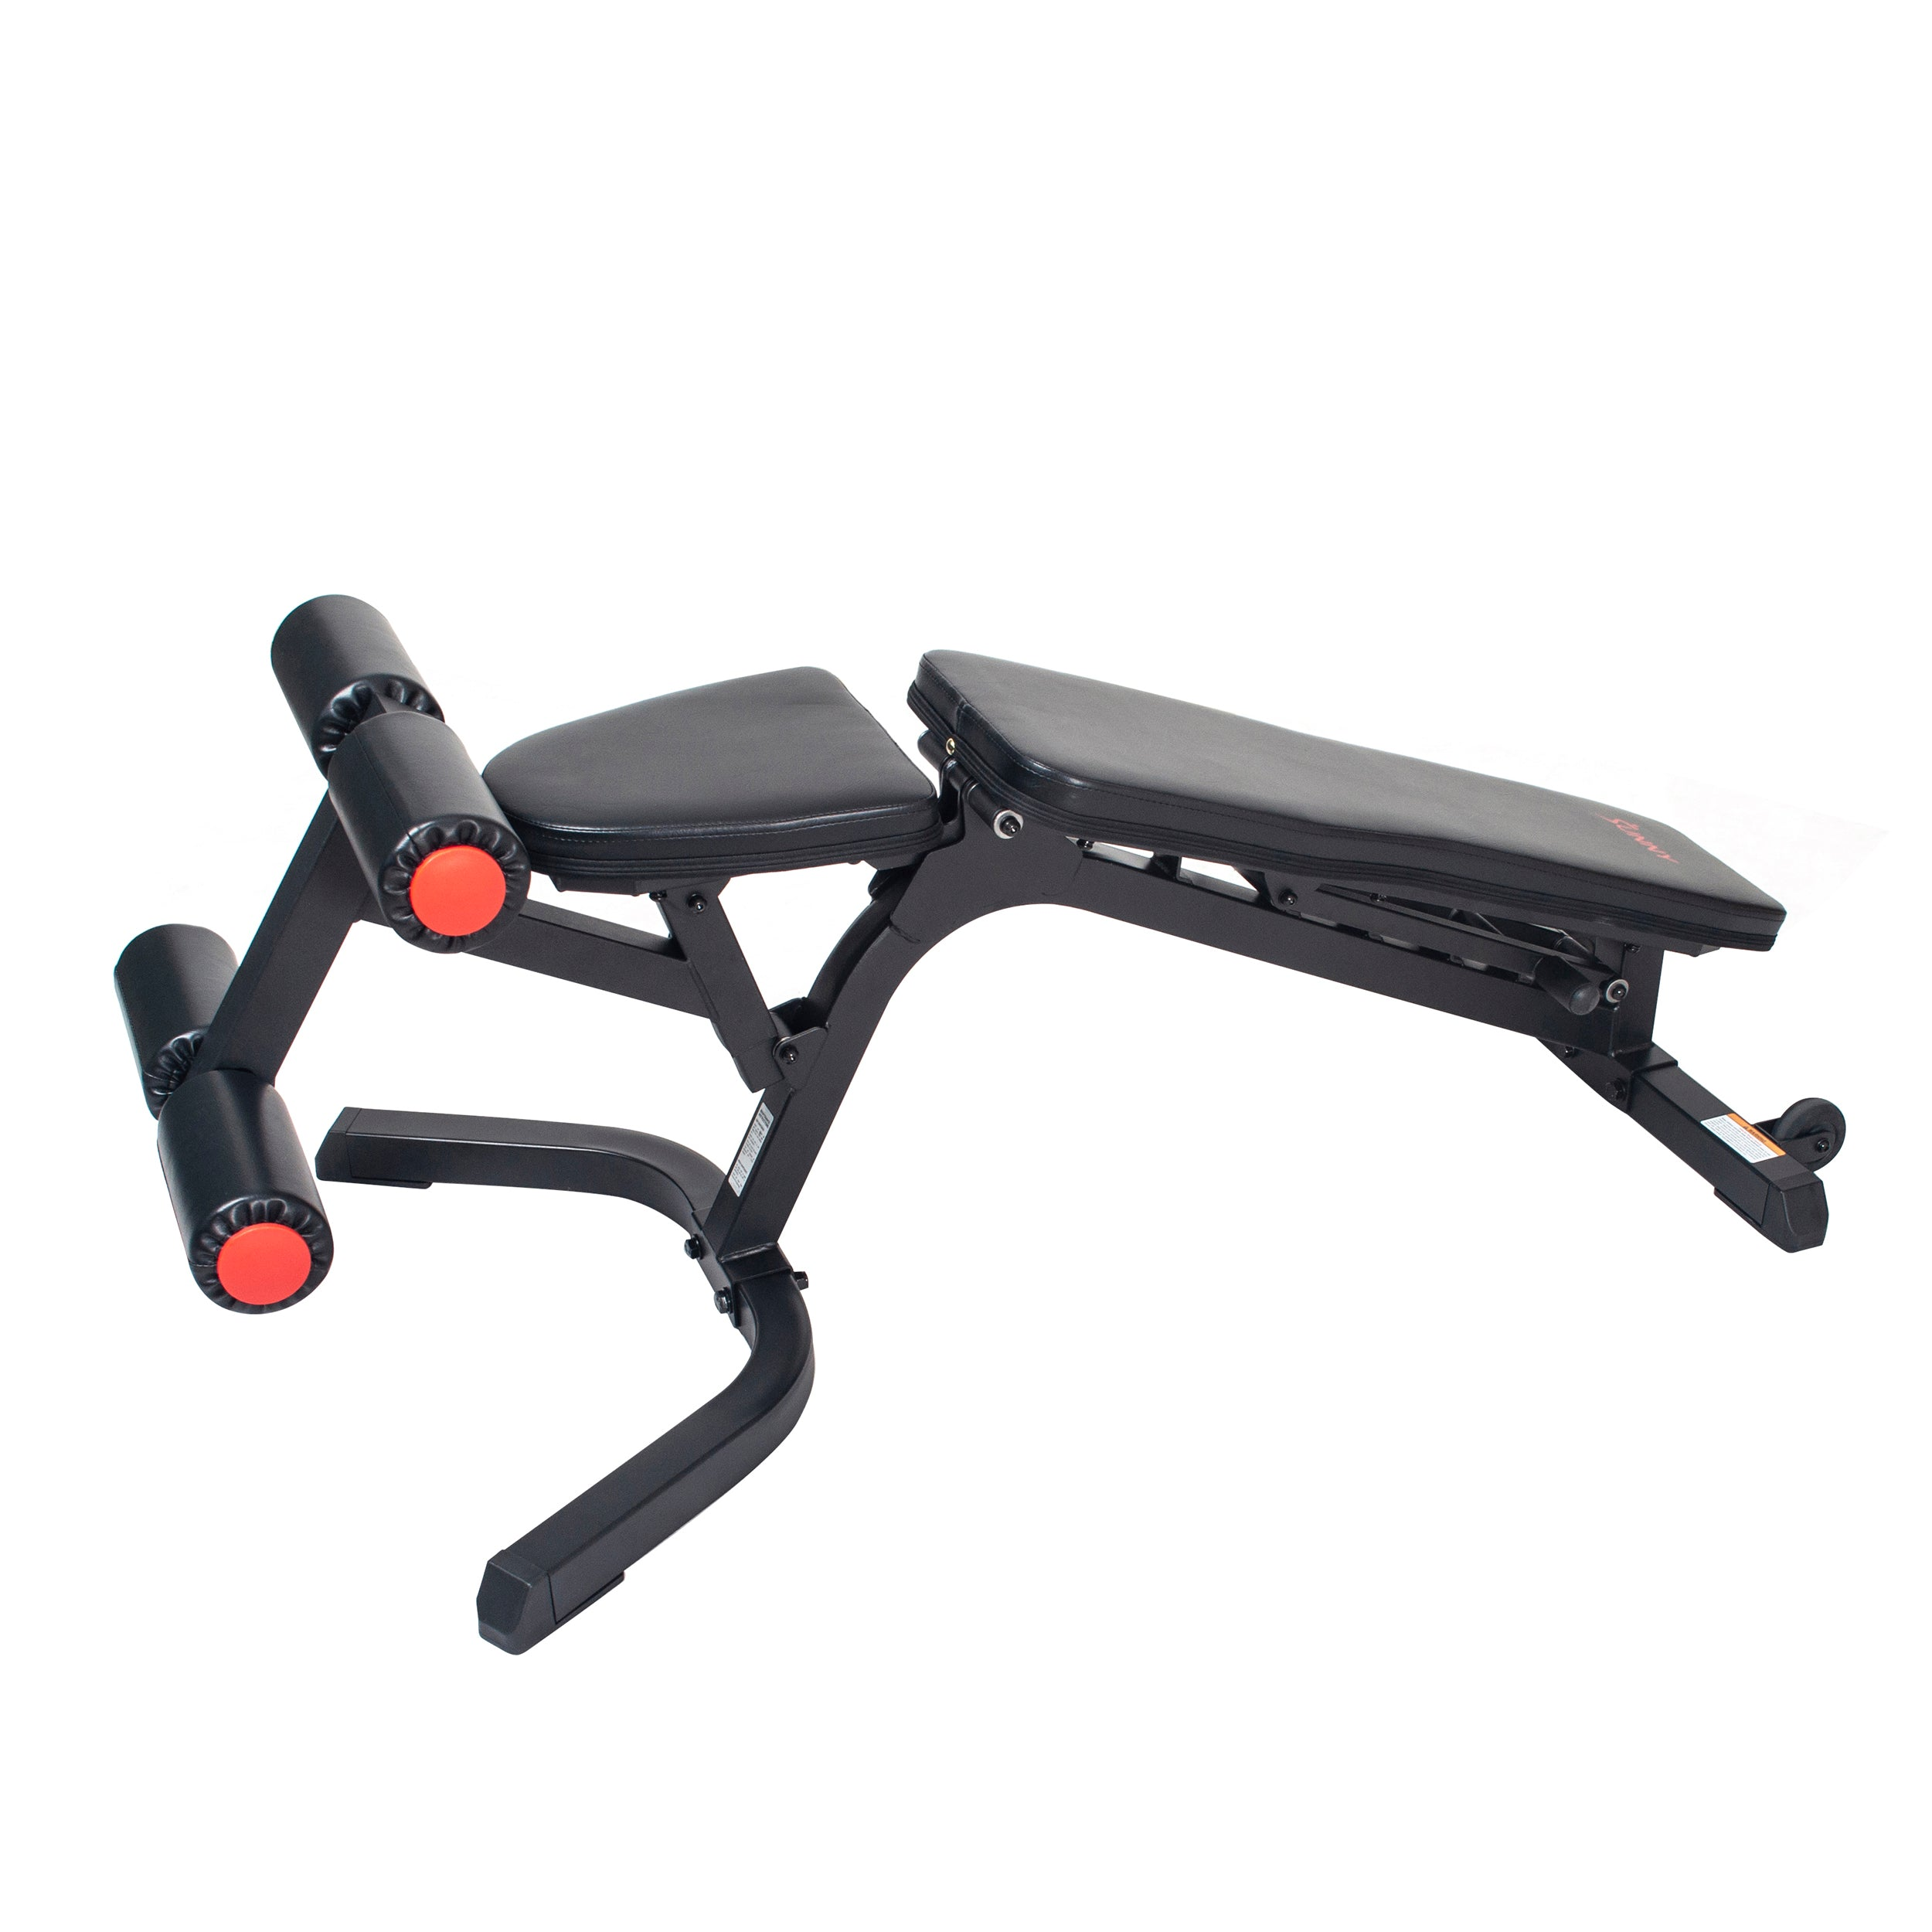 sunny-health-fitness-strength-fully-adjustable-power-zone-utility-heavy-duty-weight-bench-with-1000-lb-max-weight-SF-BH6920-high-weight-capacity